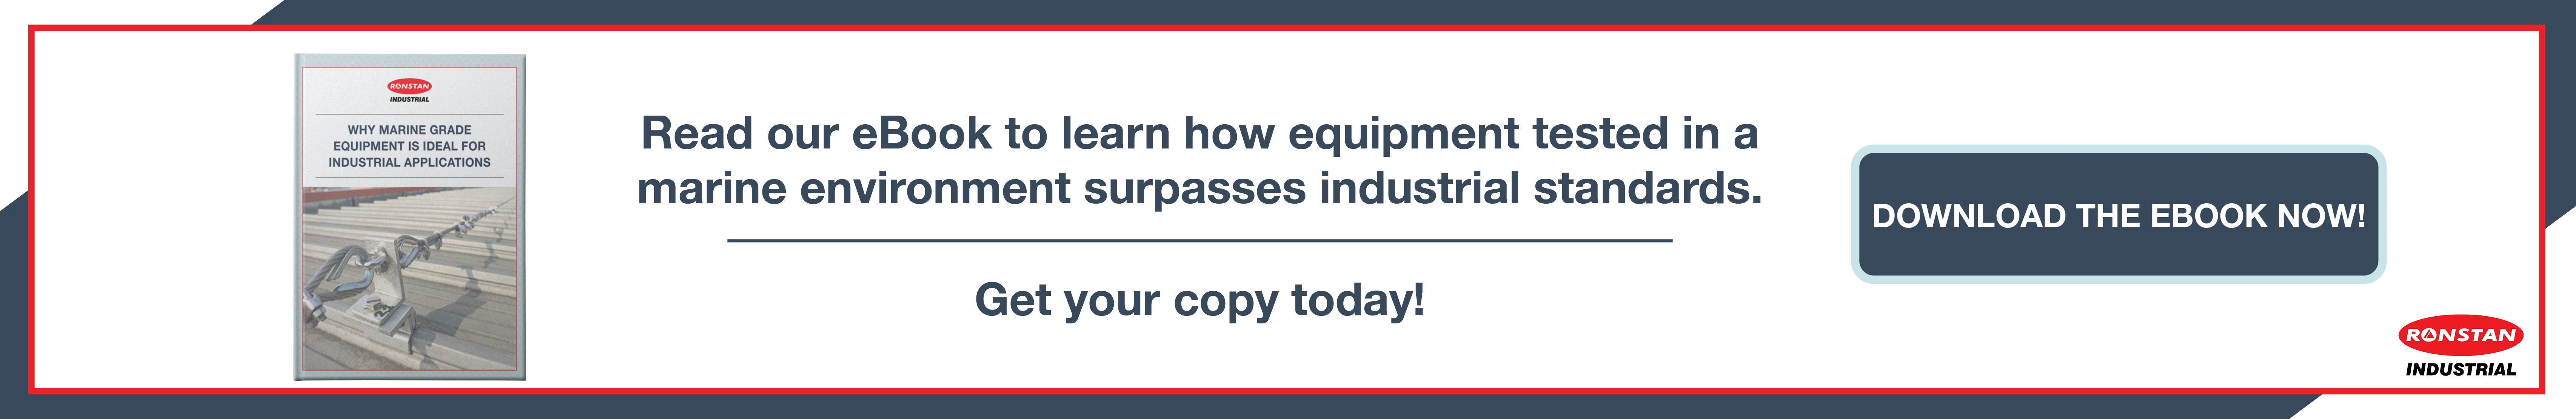 Why Marine Grade Equipment is Ideal for Industrial Application